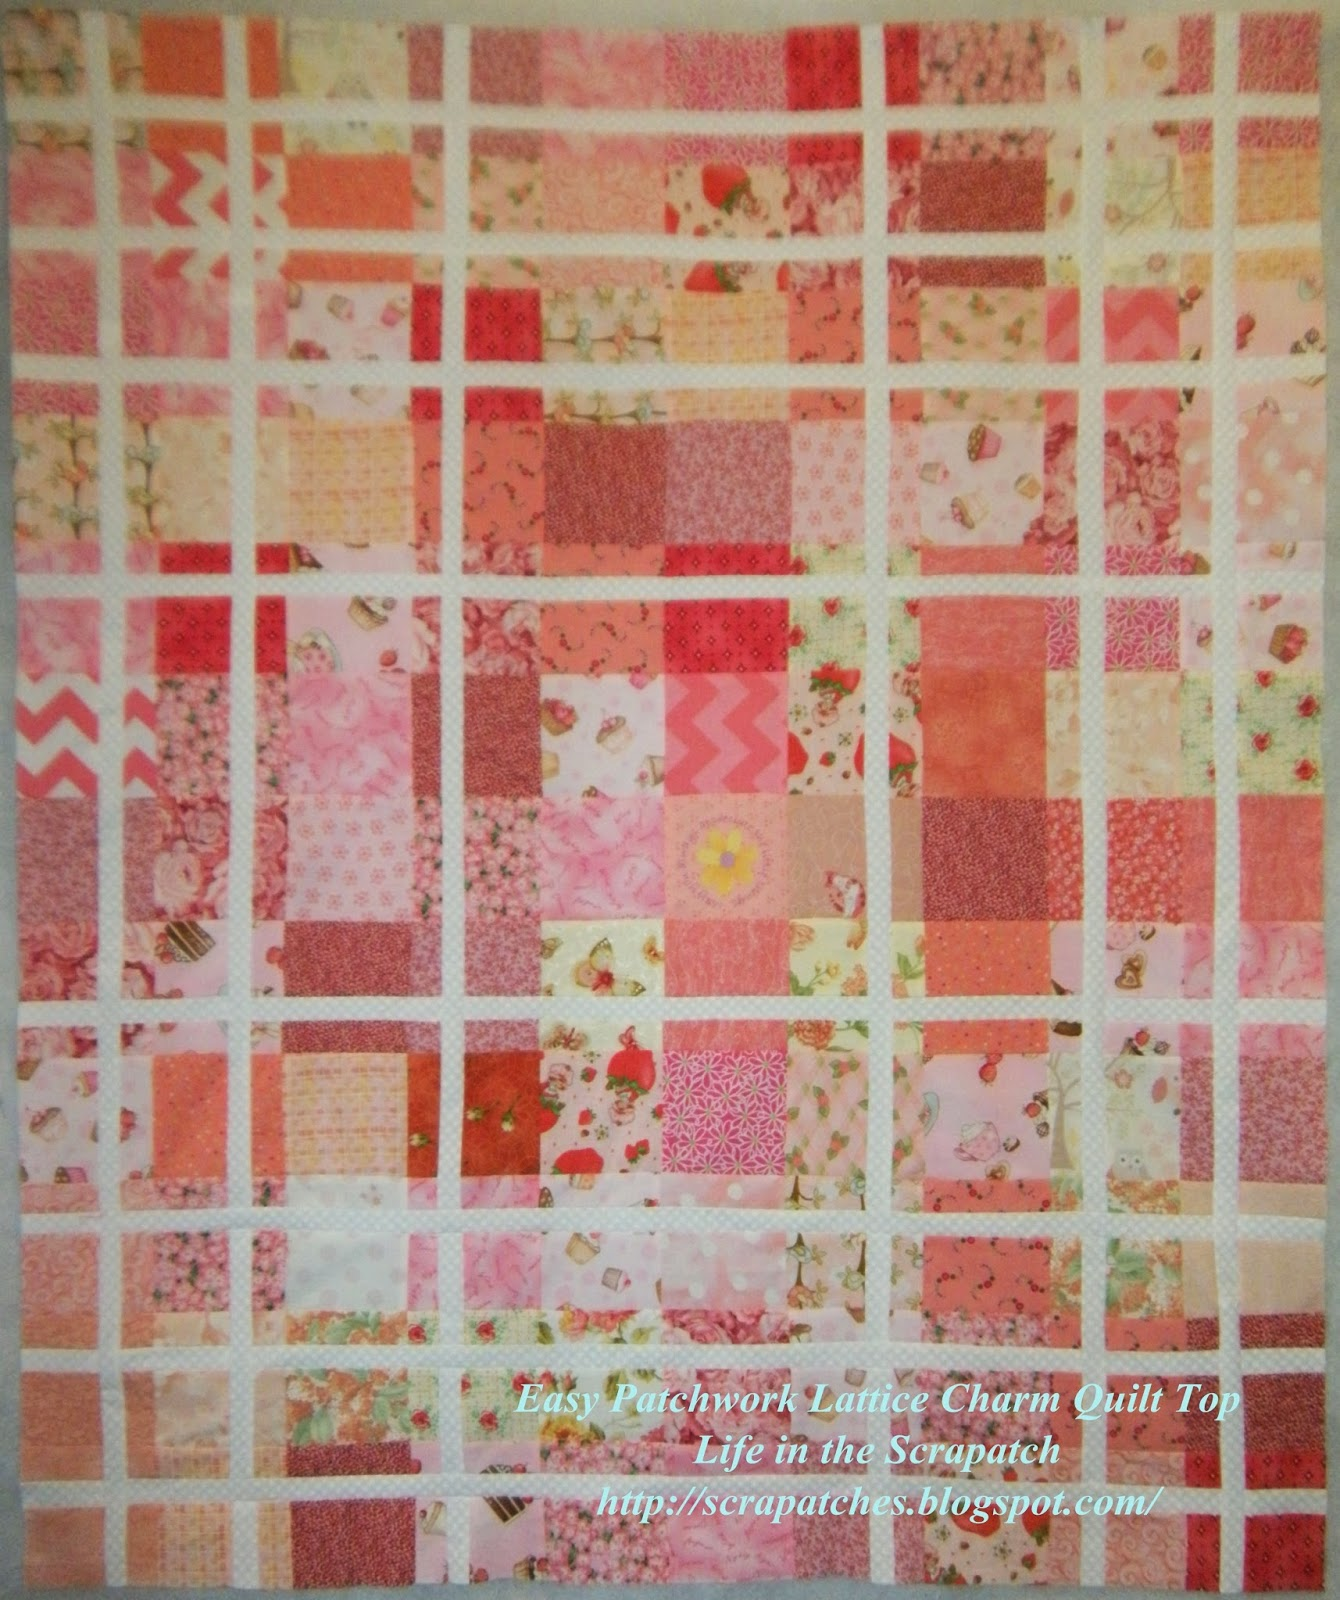 Life in the Scrapatch: My Free Quilt Patterns & Tutorials